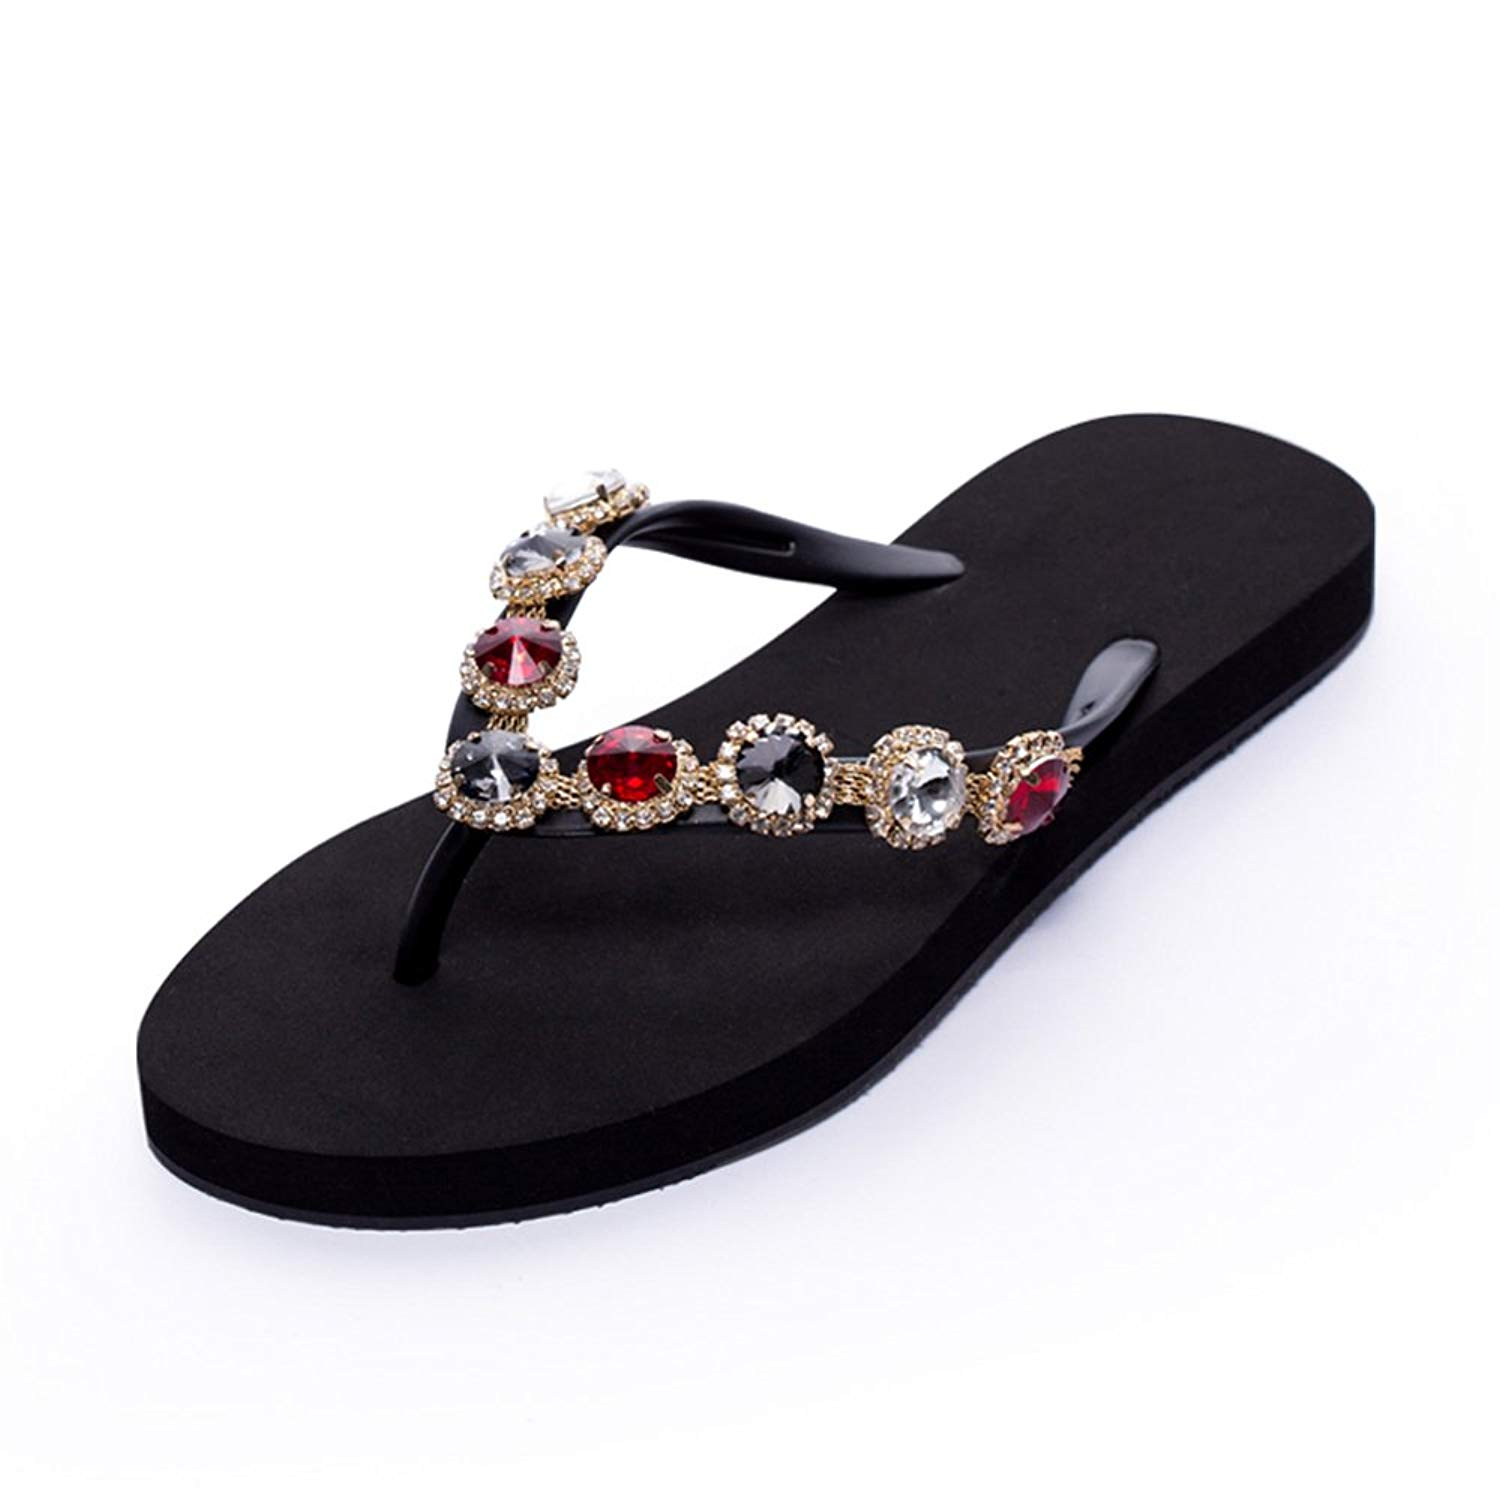 57691d119bf70f Get Quotations · Women Flip Flops Jeweled Hand Crafted Crystal Rhinestones Flats  Sandals